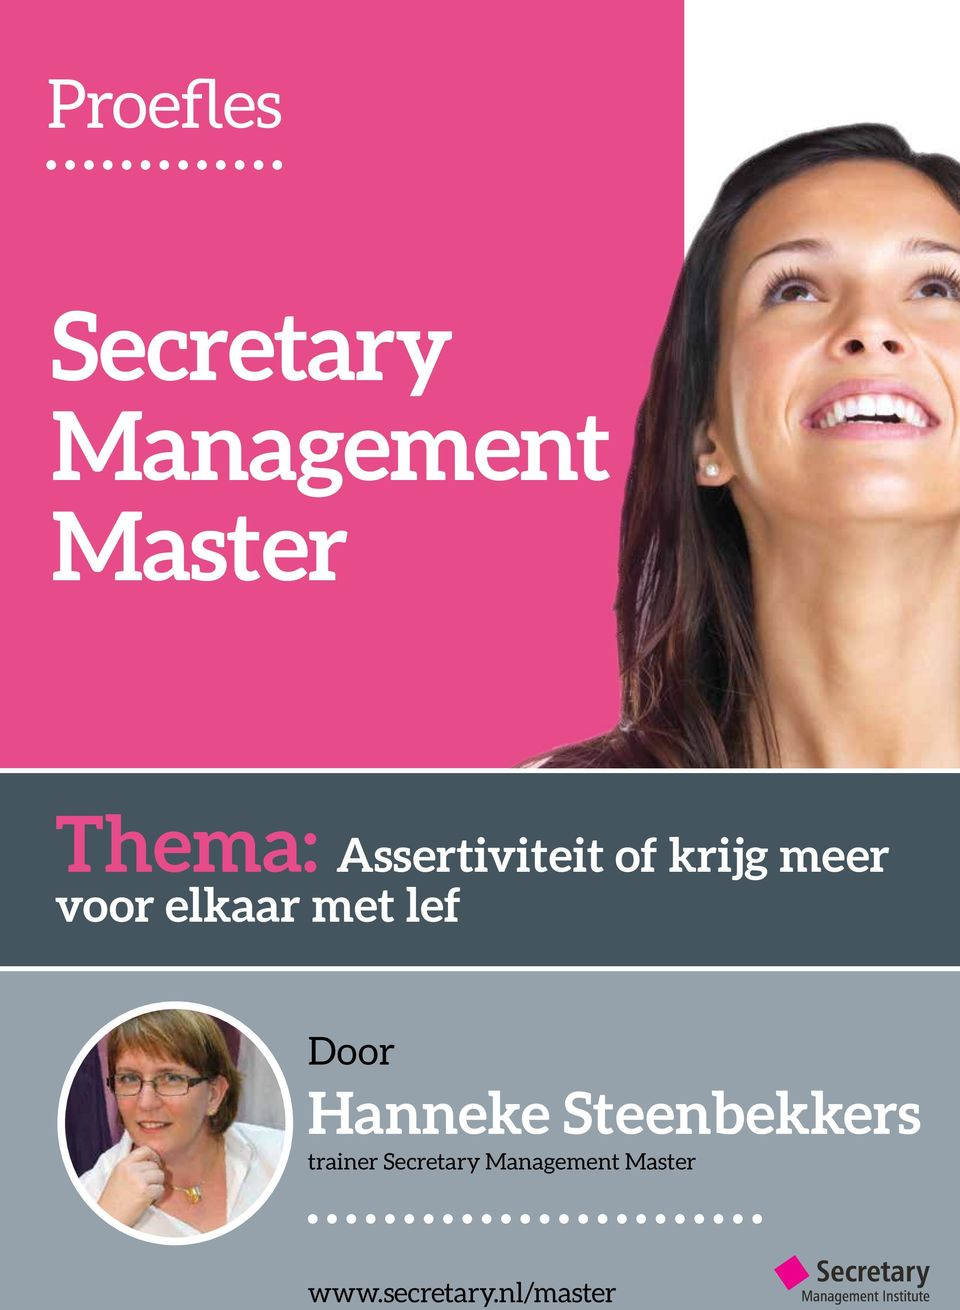 lef Door Hanneke Steenbekkers trainer